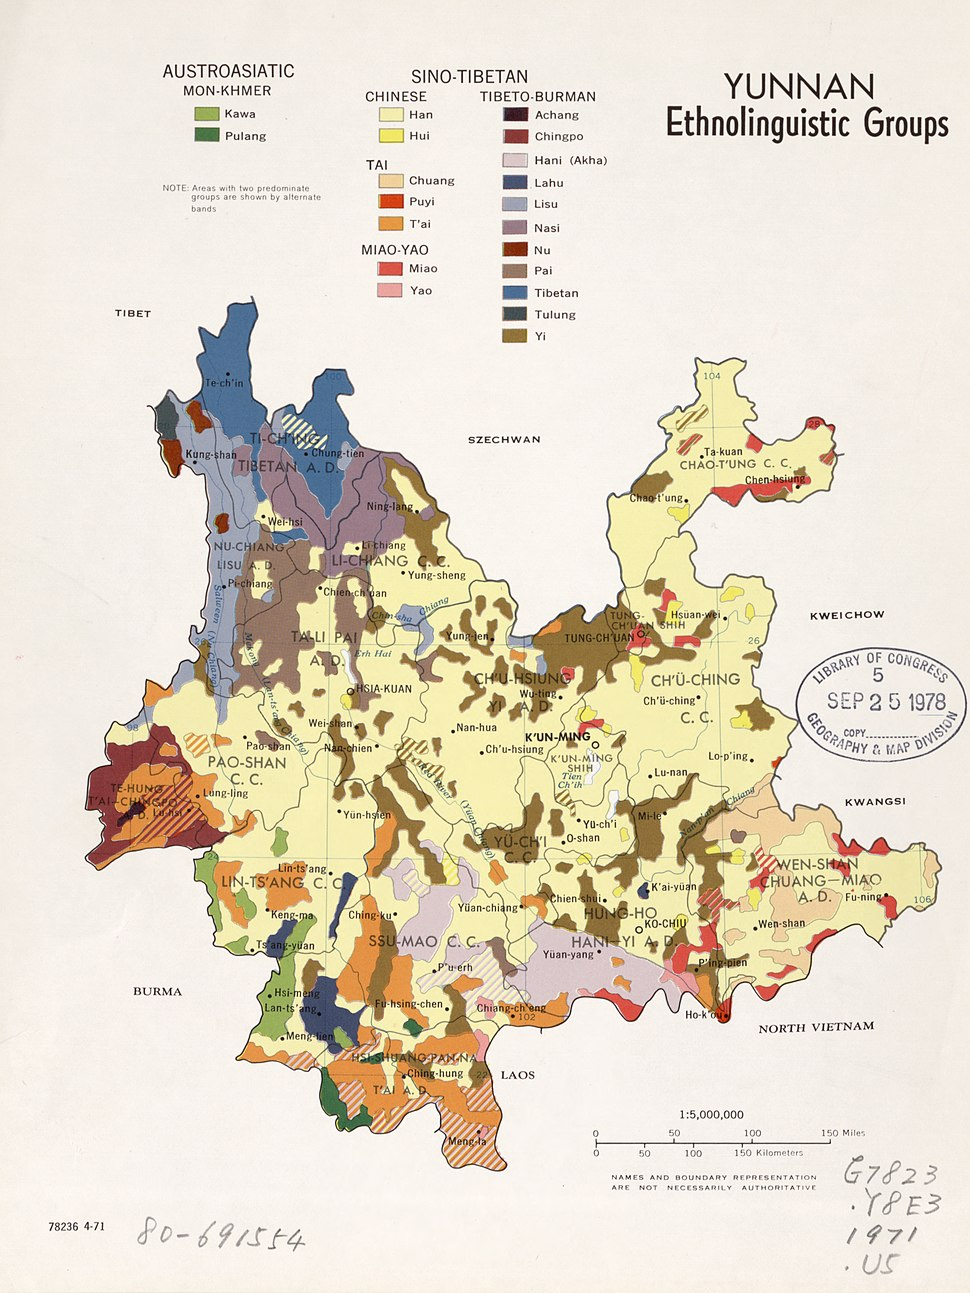 Ethnolinguistic groups in Yunnan Province (1971)